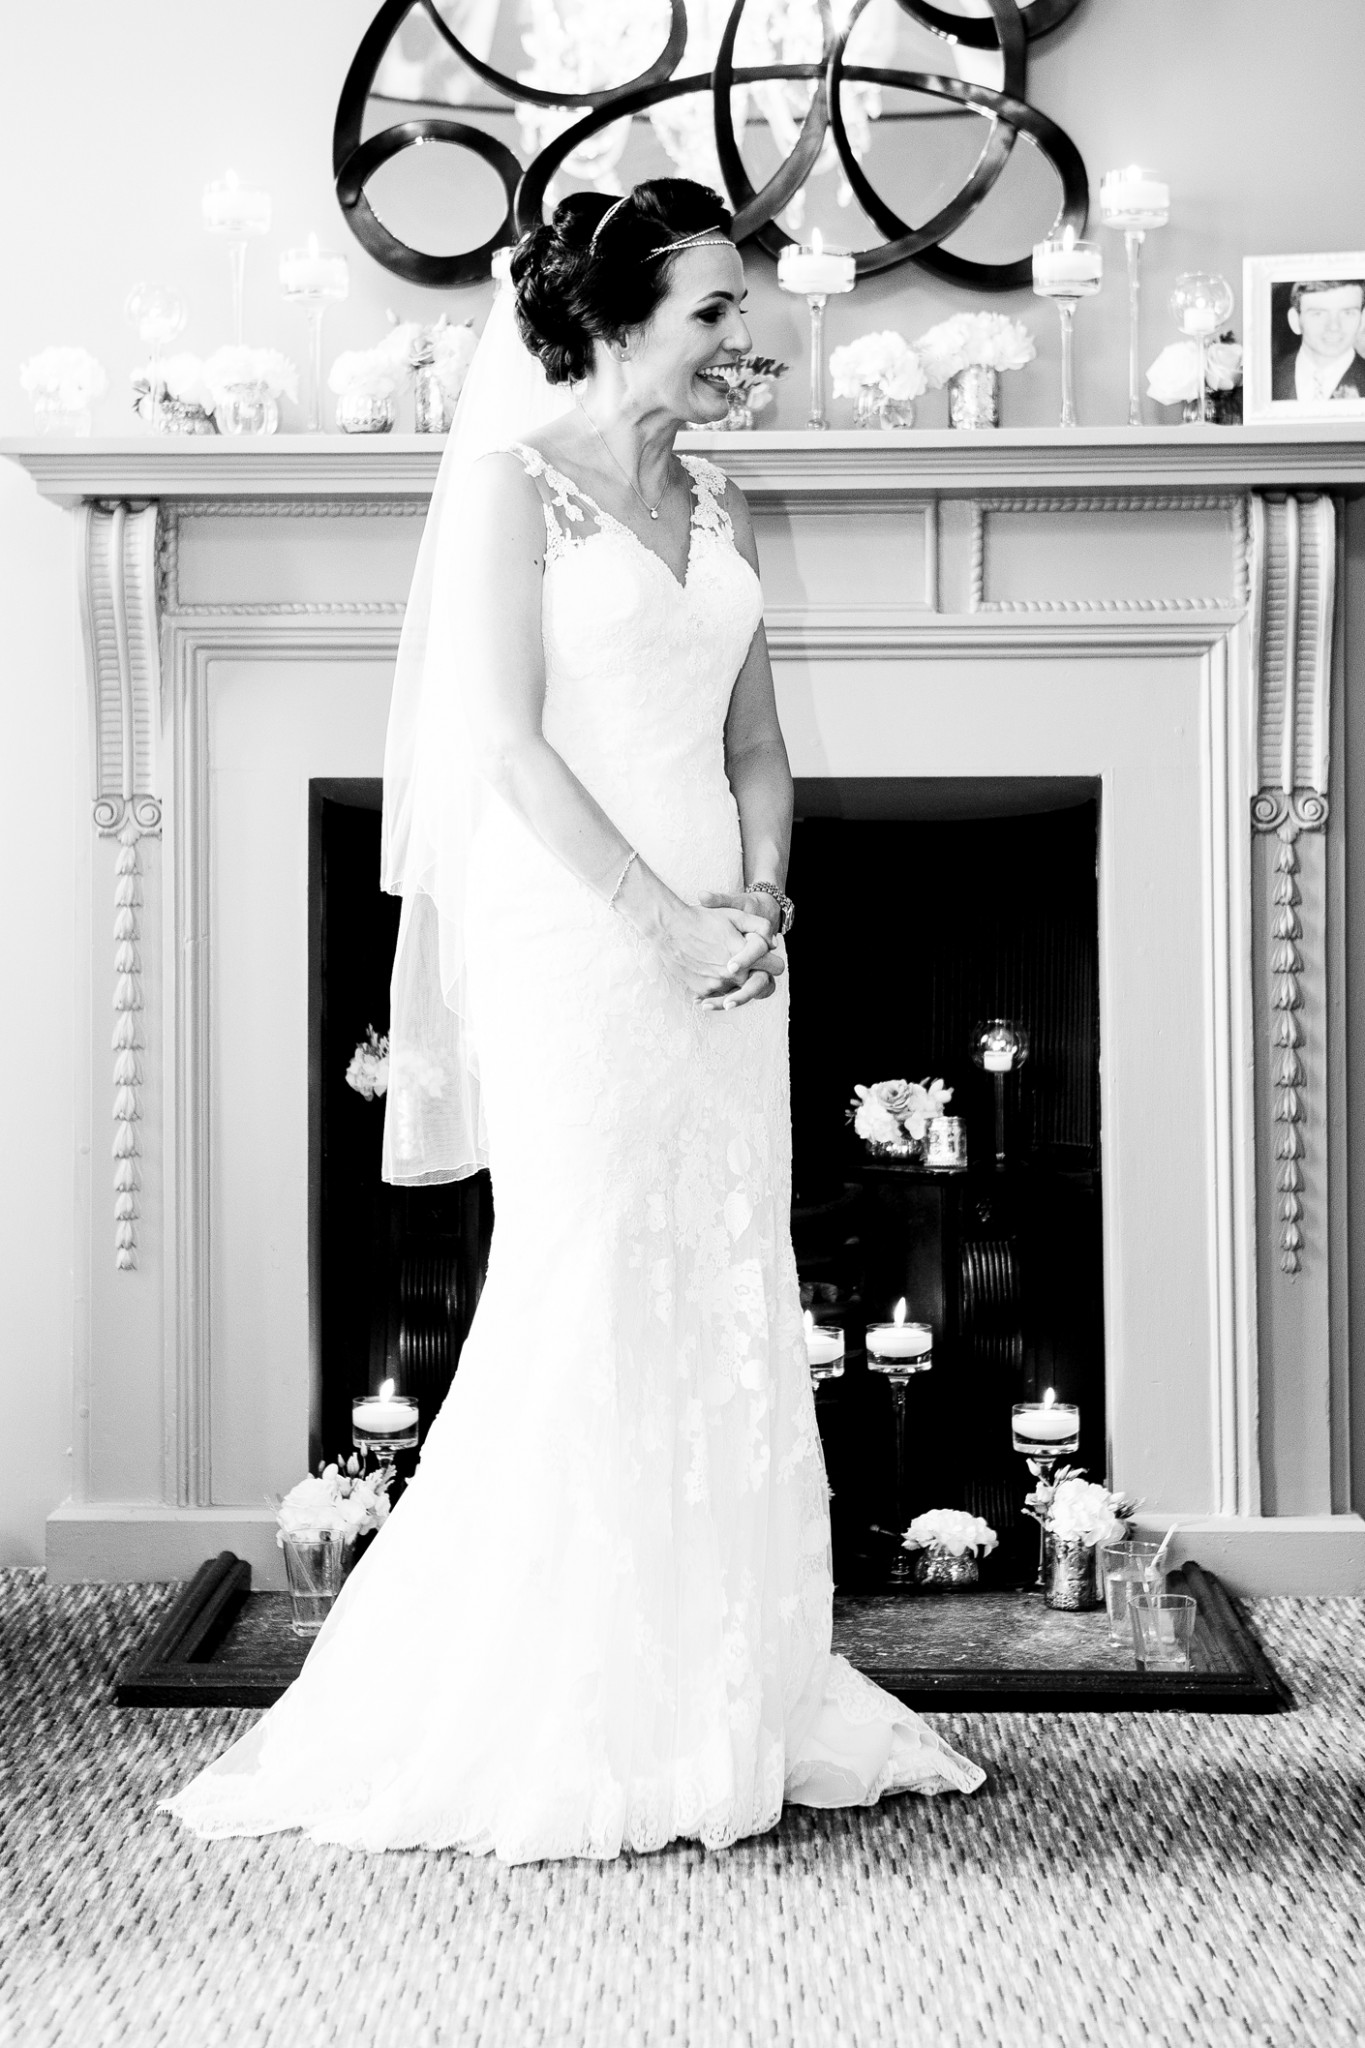 photography-of-the-bride-after-the-wedding-ceremony-in-cheshire